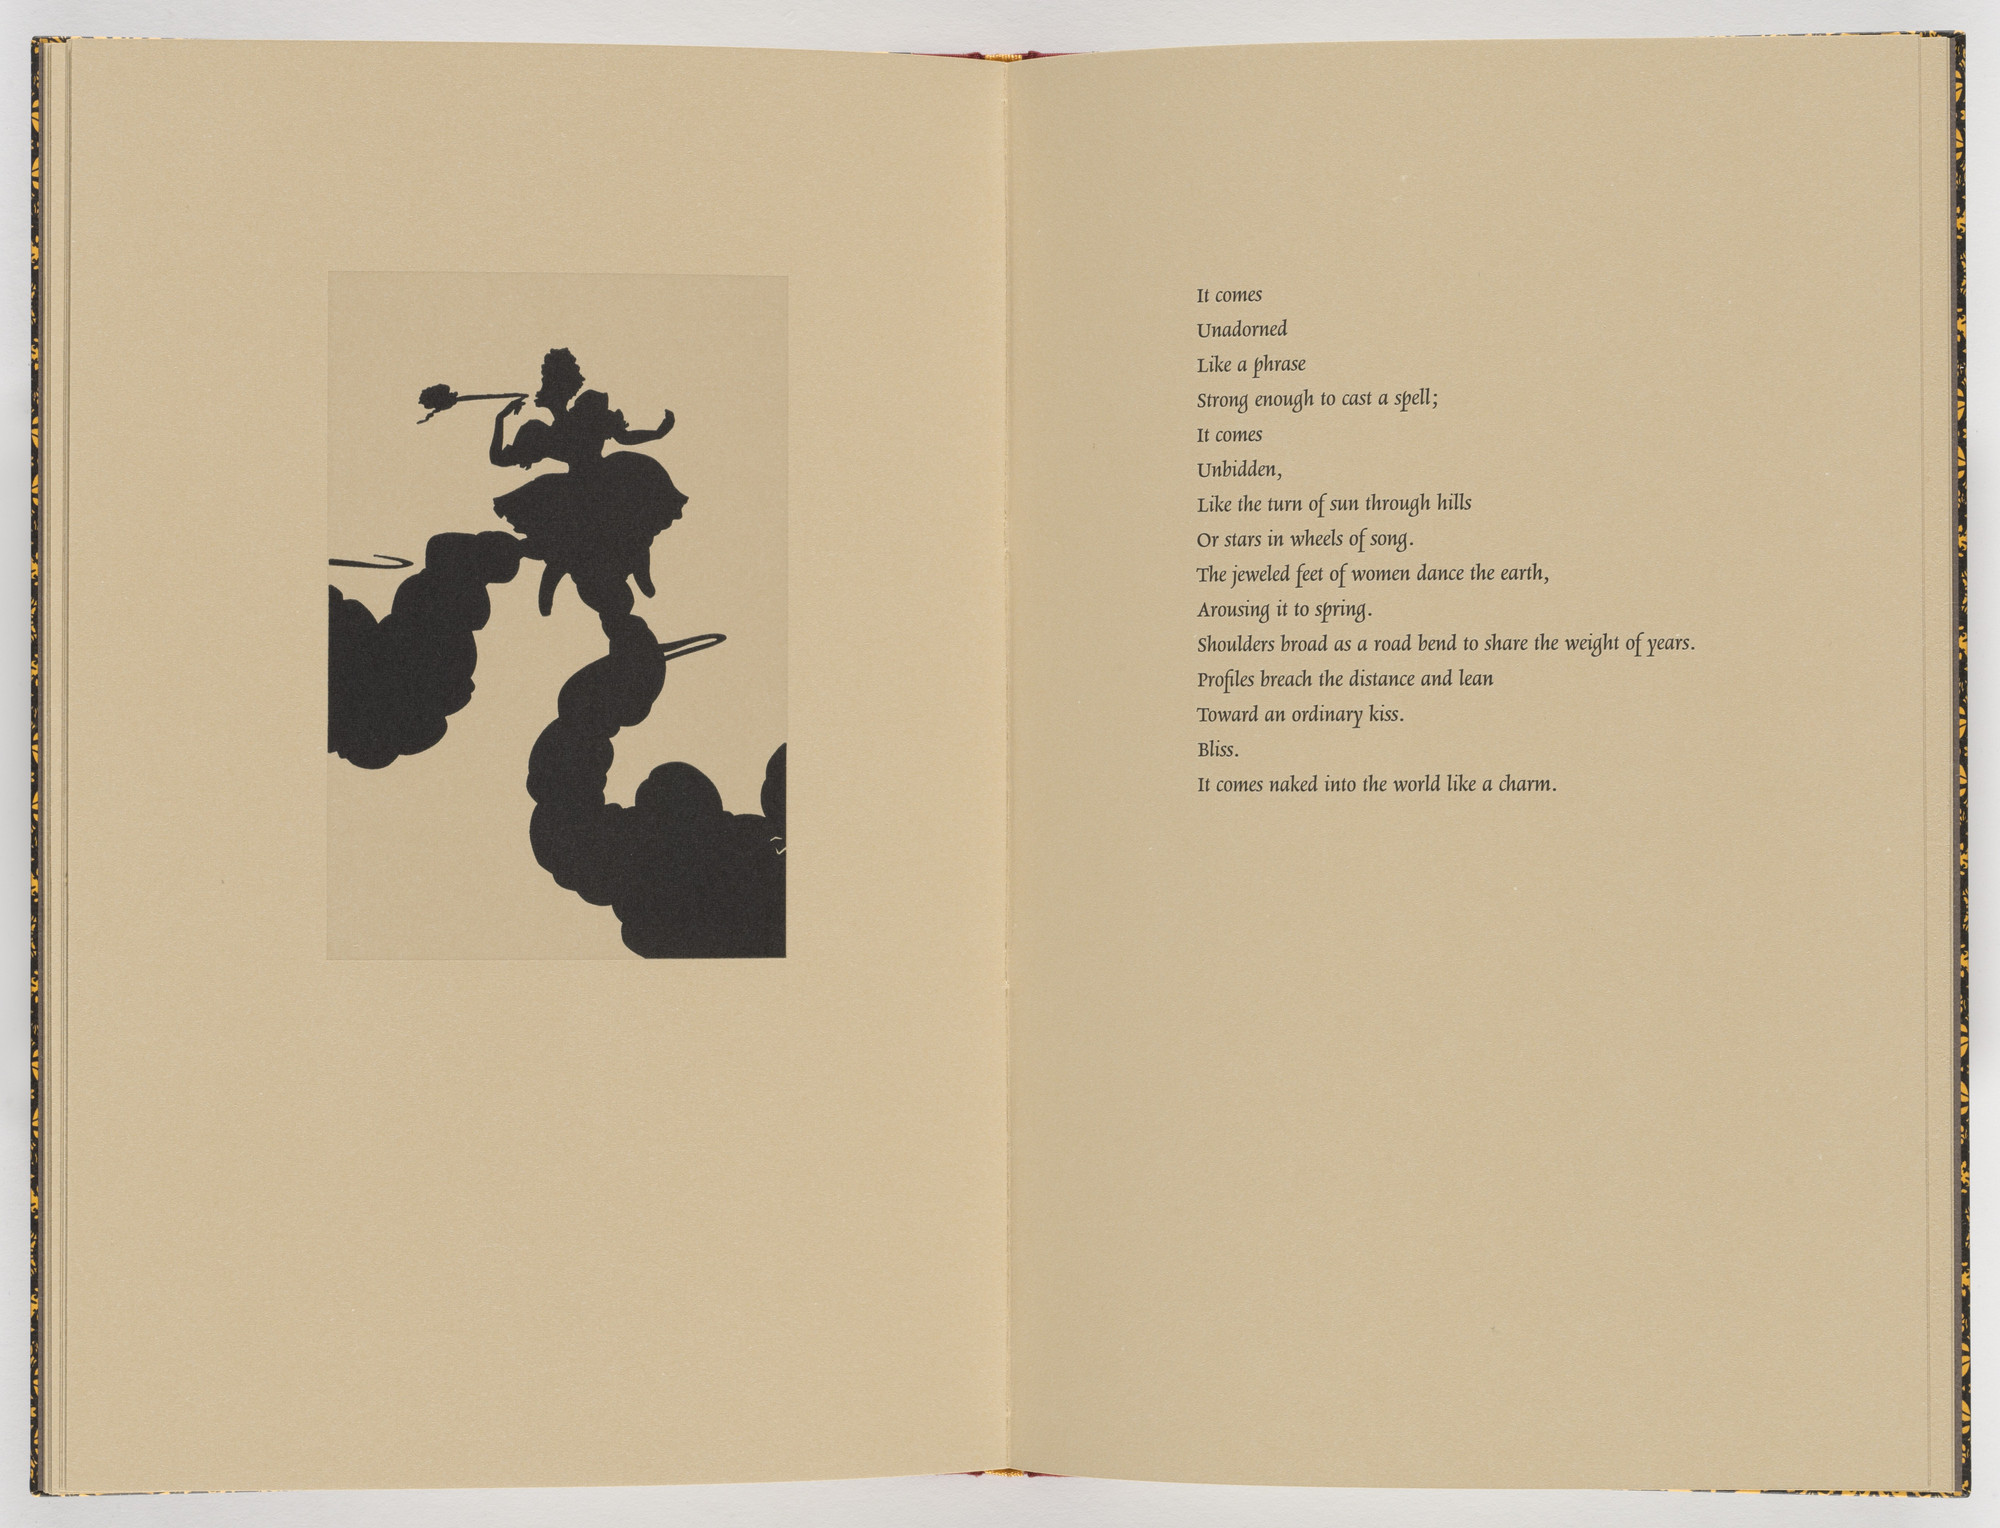 Kara Walker. Plate (page 22) from Five Poems. 2002